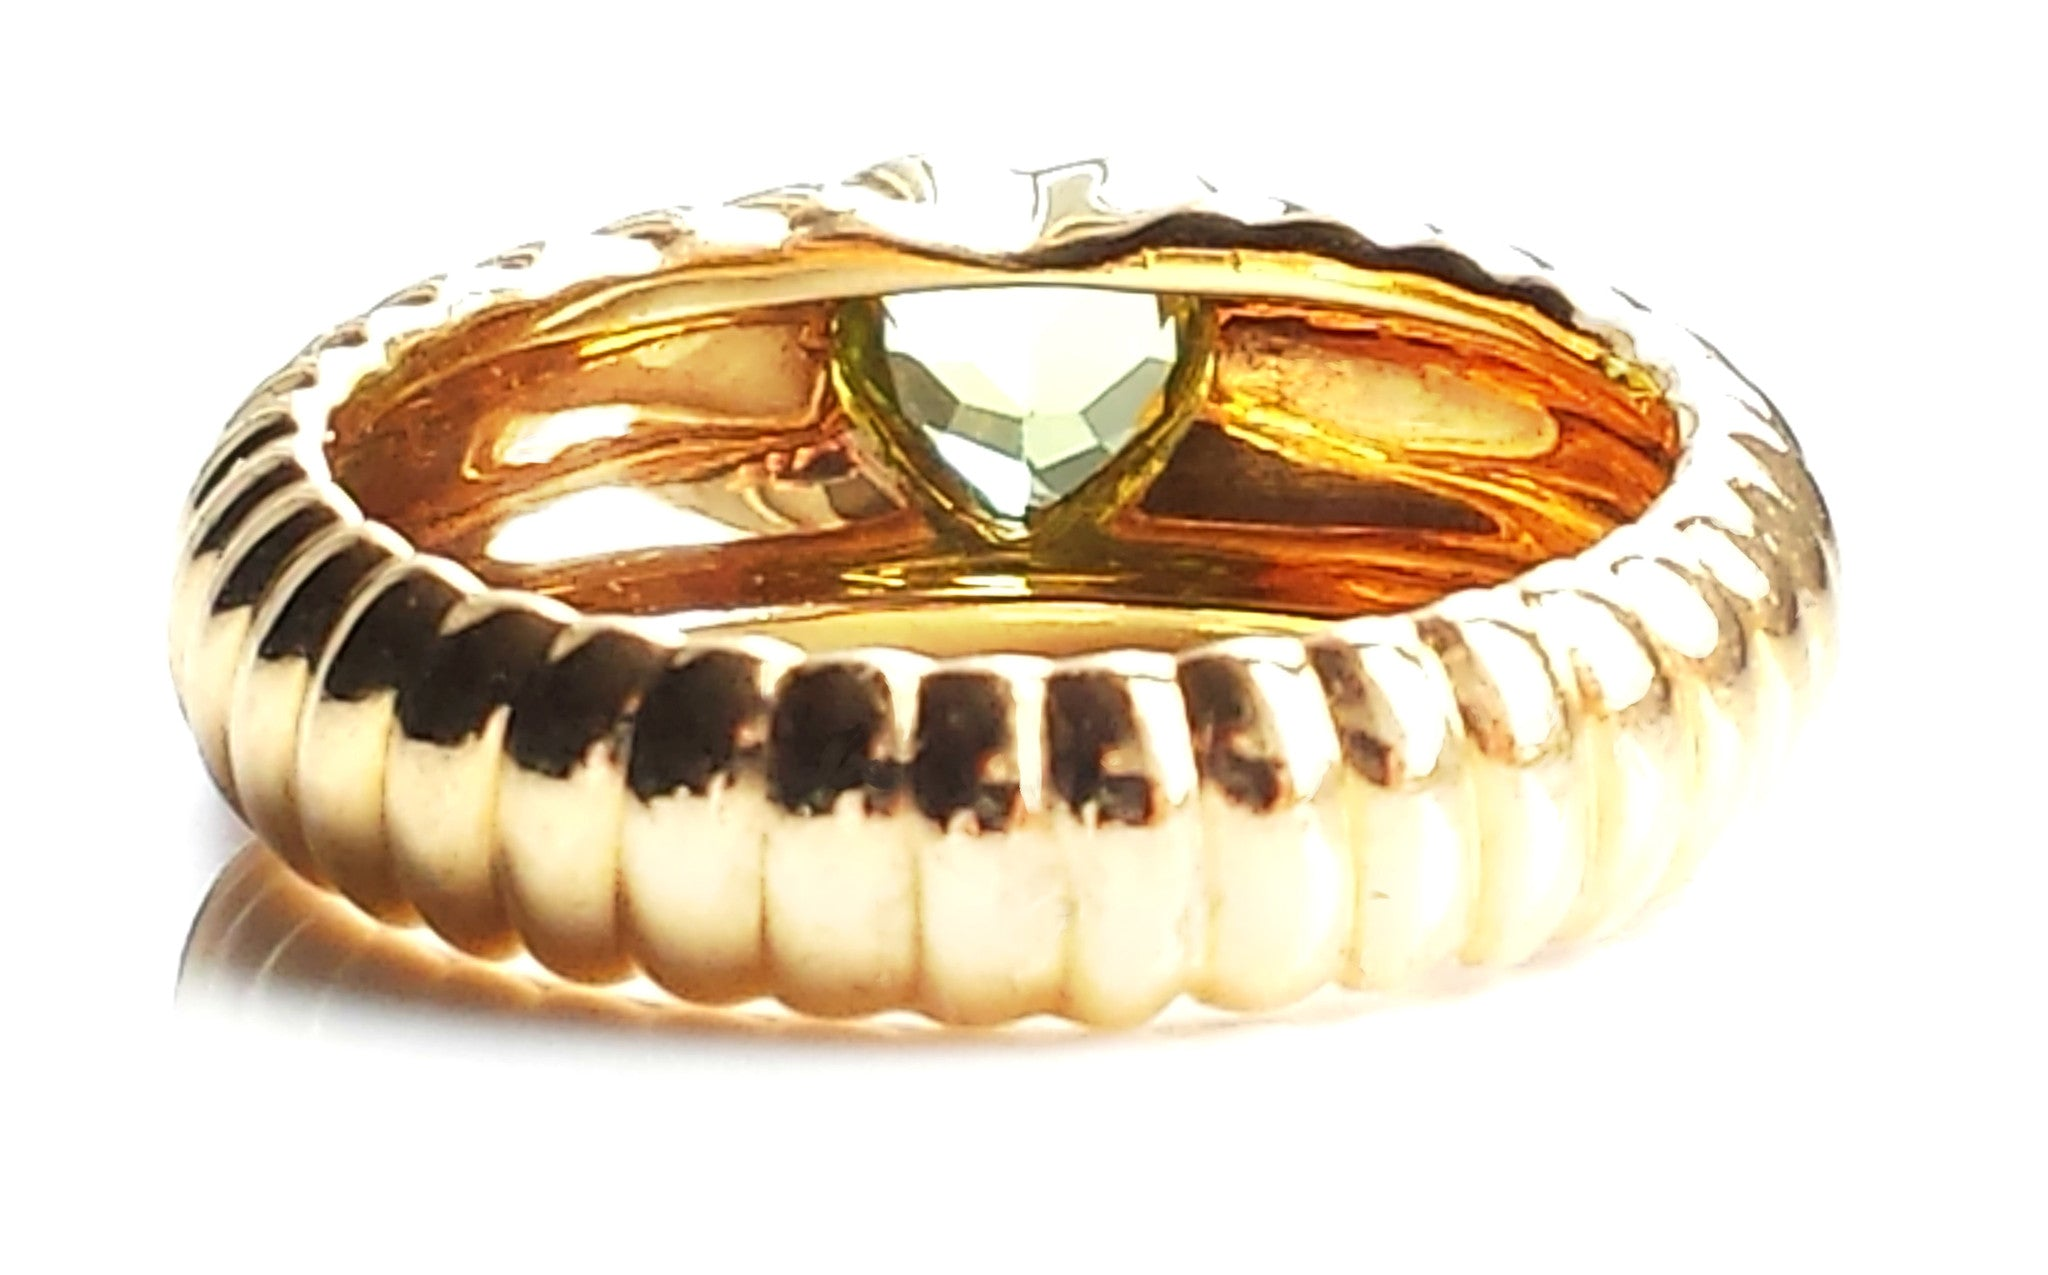 diamond gold ring jewelry rings vintage inspired portfolio antique sapphire white onyx